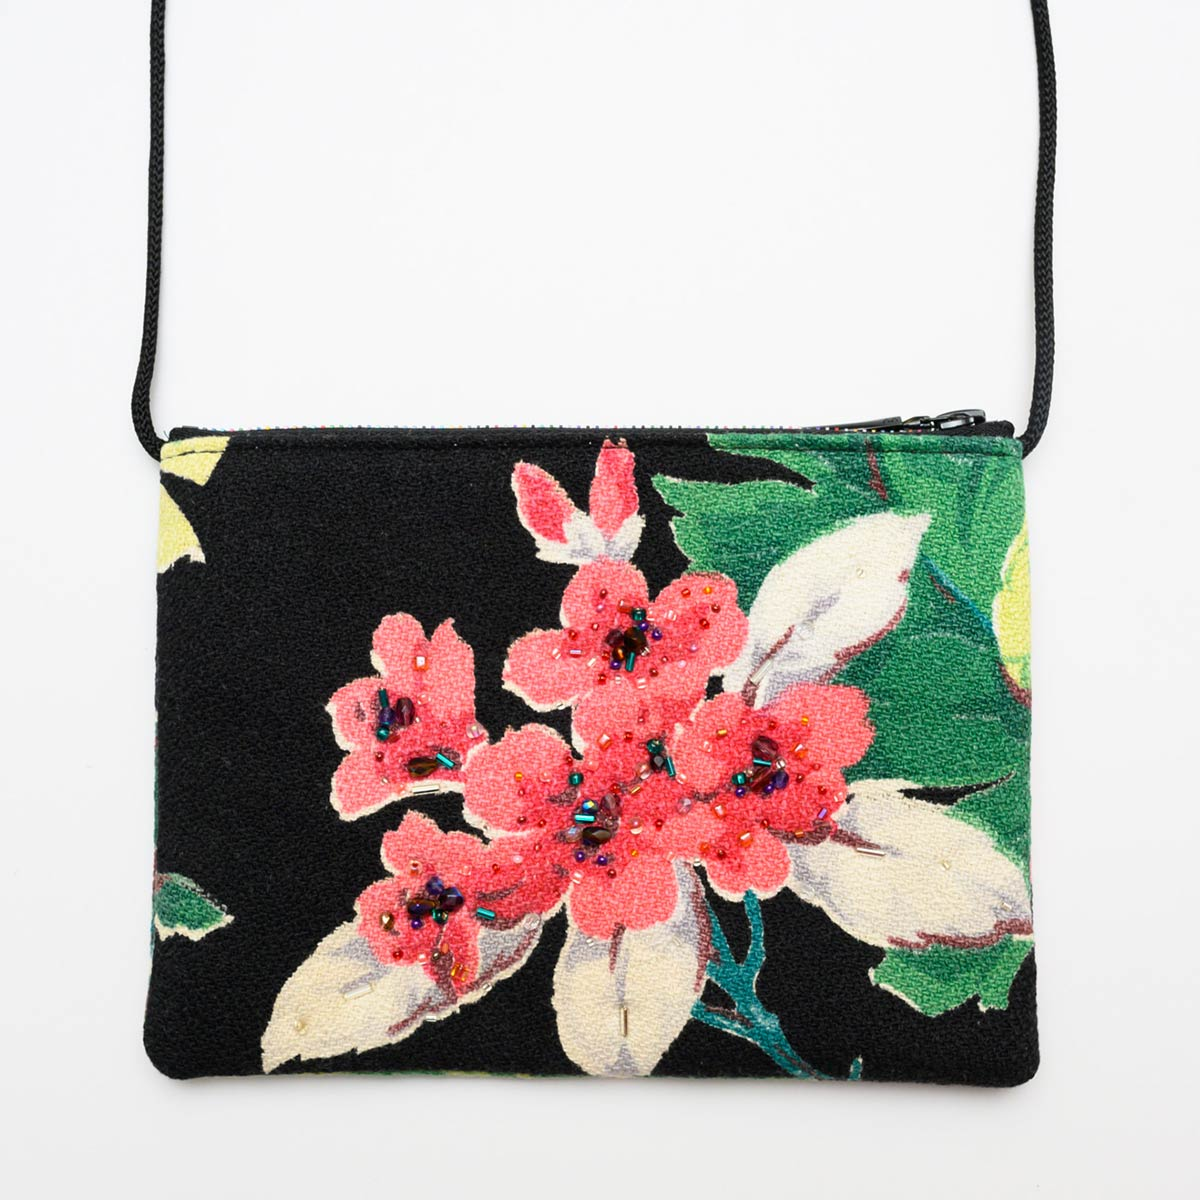 The Opera Bag – Bright floral on black